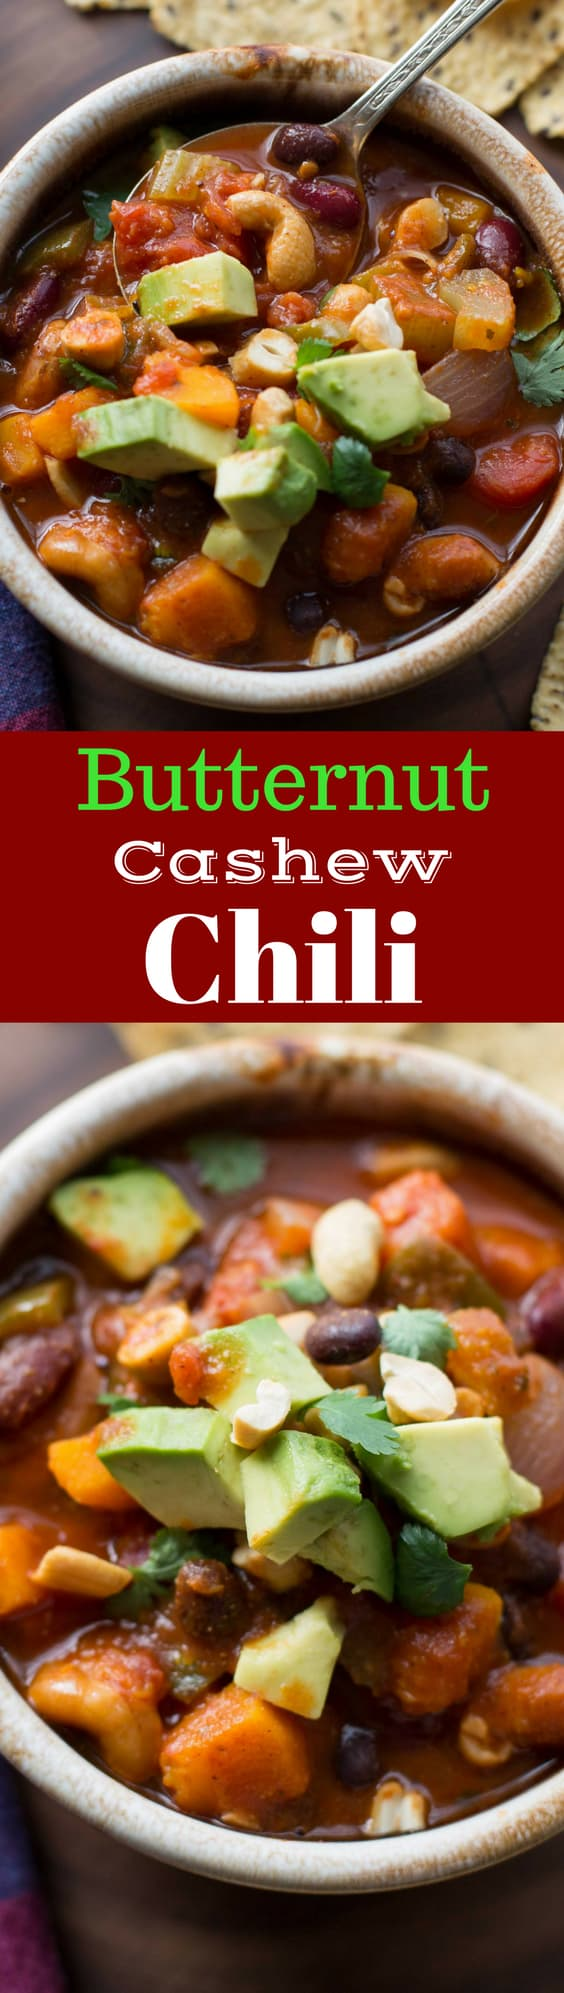 Butternut Cashew Chili ~ A delicious heart healthy, meatless chili with butternut squash and cashew nuts. www.savingdessert.com